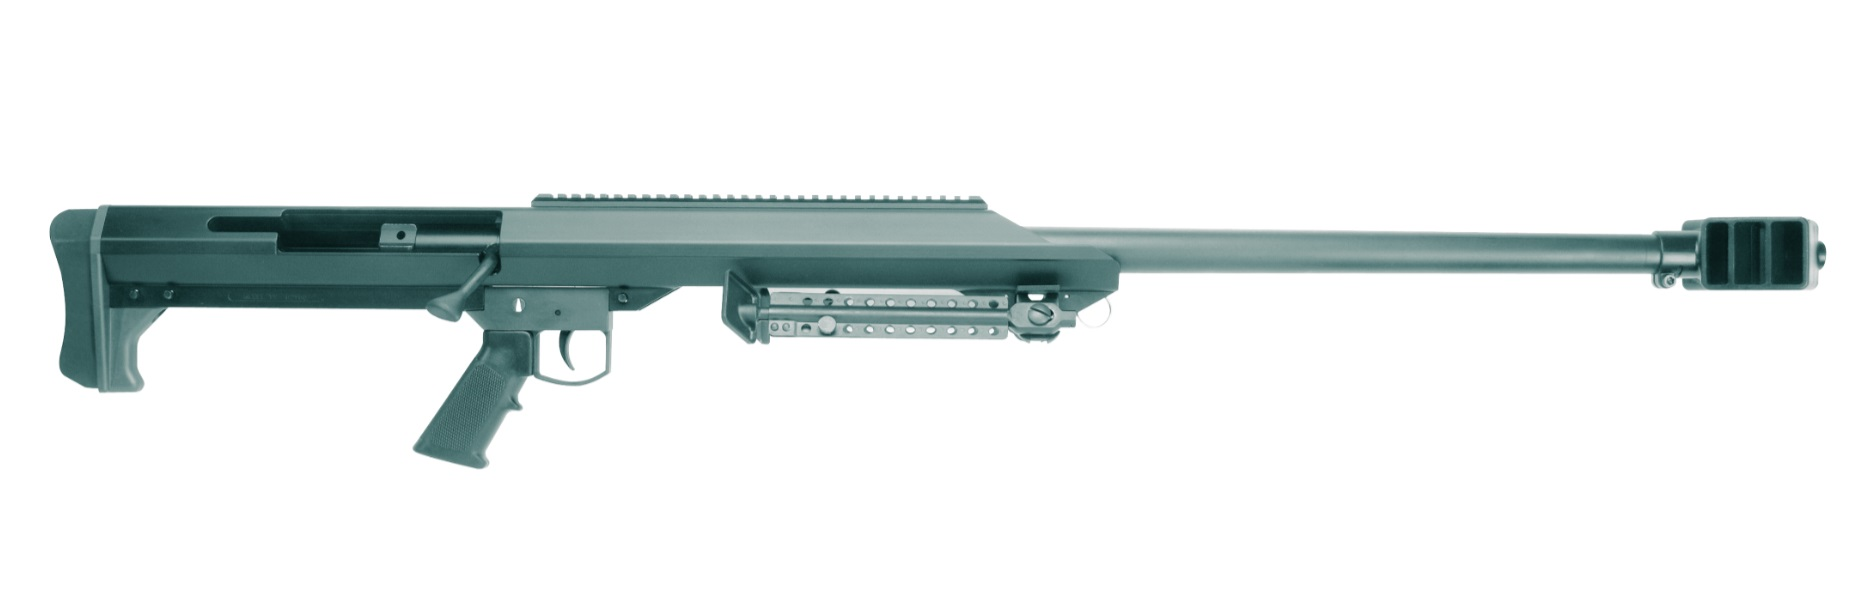 Barrett Firearms Model 99 50 BMG